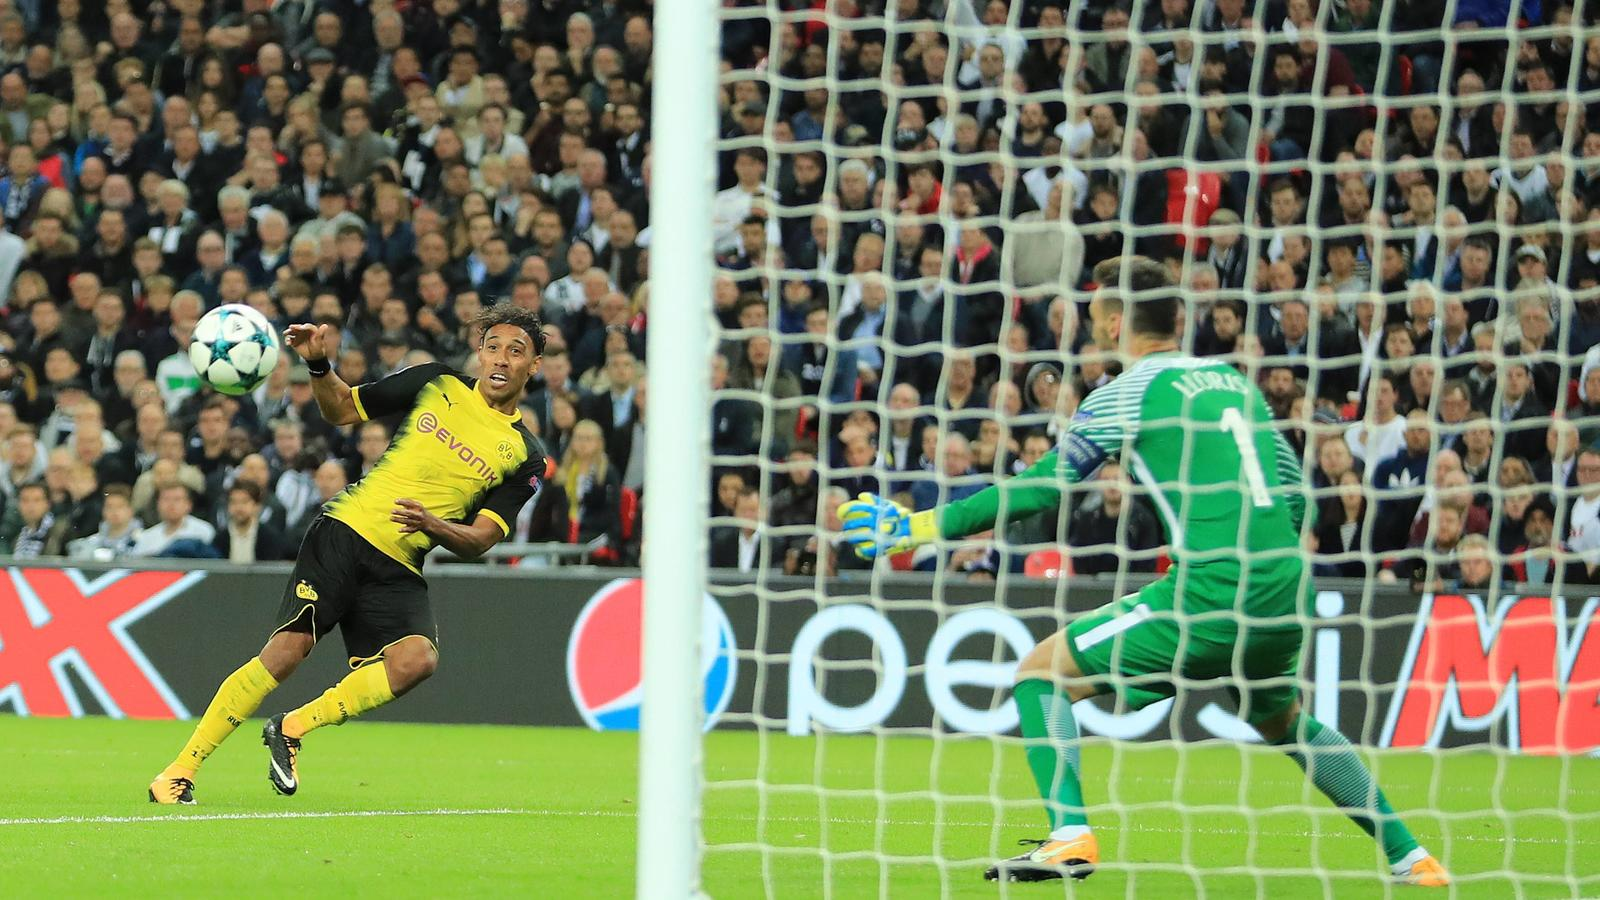 13th September 2017, Wembley Stadium, London, England&#x3B; Champions League Group stage, Tottenham Hotspur versus Borussia Dortmund&#x3B; Pierre-Emerick Aubameyang of Borussia Dortmund scores but it is disallowed for offside PUBLICATIONxINxGERxSUIxAUTxHUNxSWE